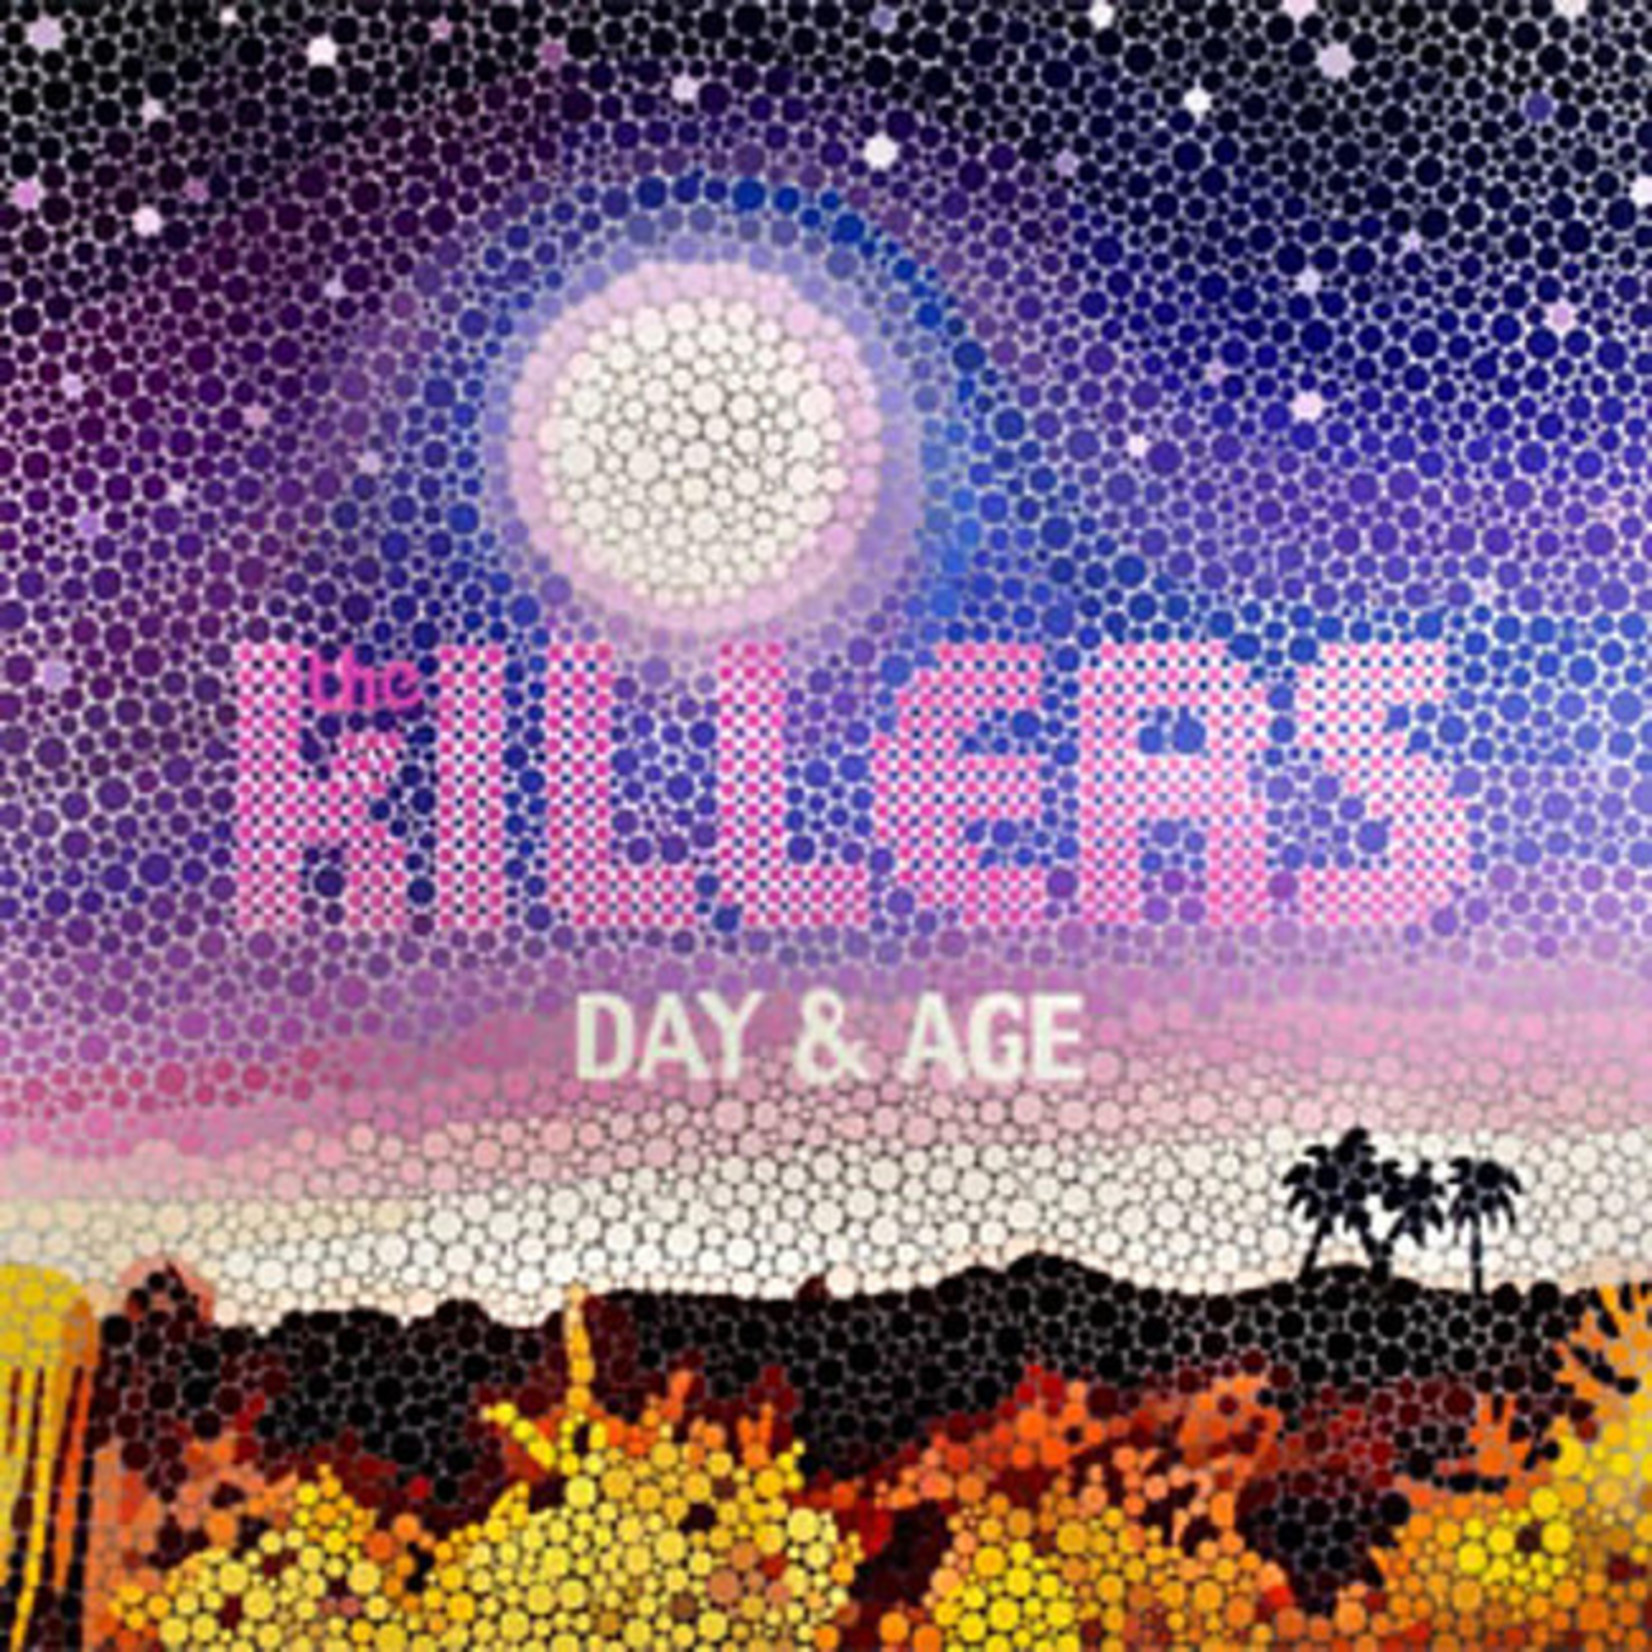 [New] Killers: Day & Age